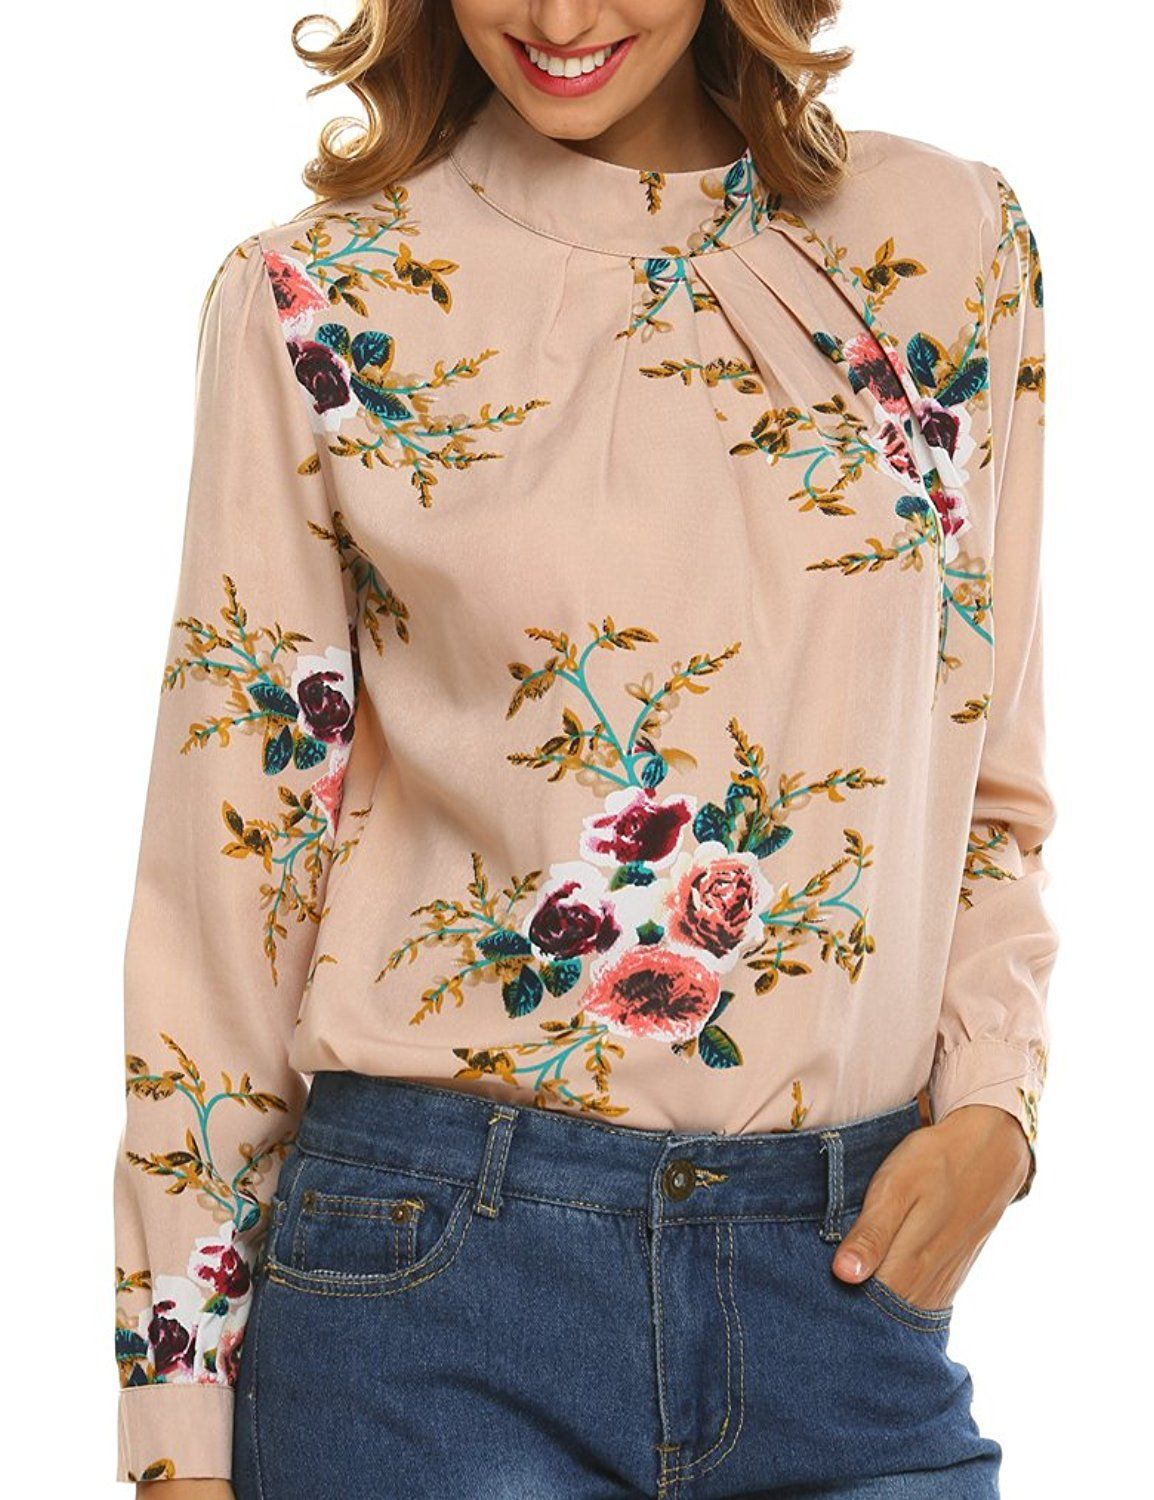 58bccba0348 Naggoo Women's Loose Chiffon Long Sleeve Floral Print Blouse Tops ...